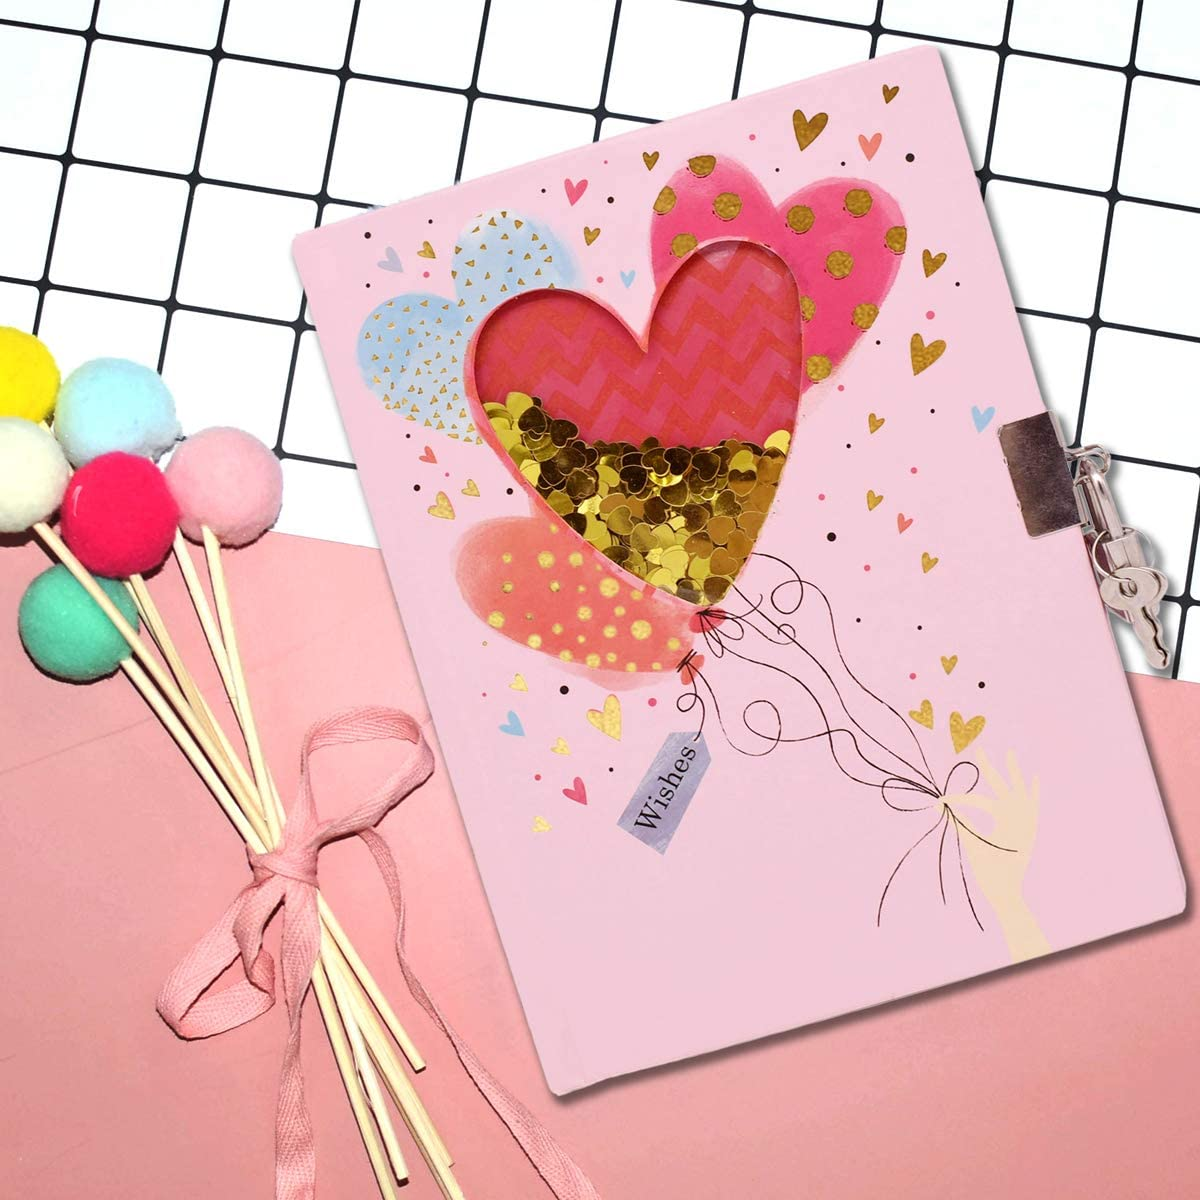 Heart Pattern Shakable Sequin Journal Secret Lock Diary Notebook for Kids EverCreatives Diary with Lock for Girls and Boys